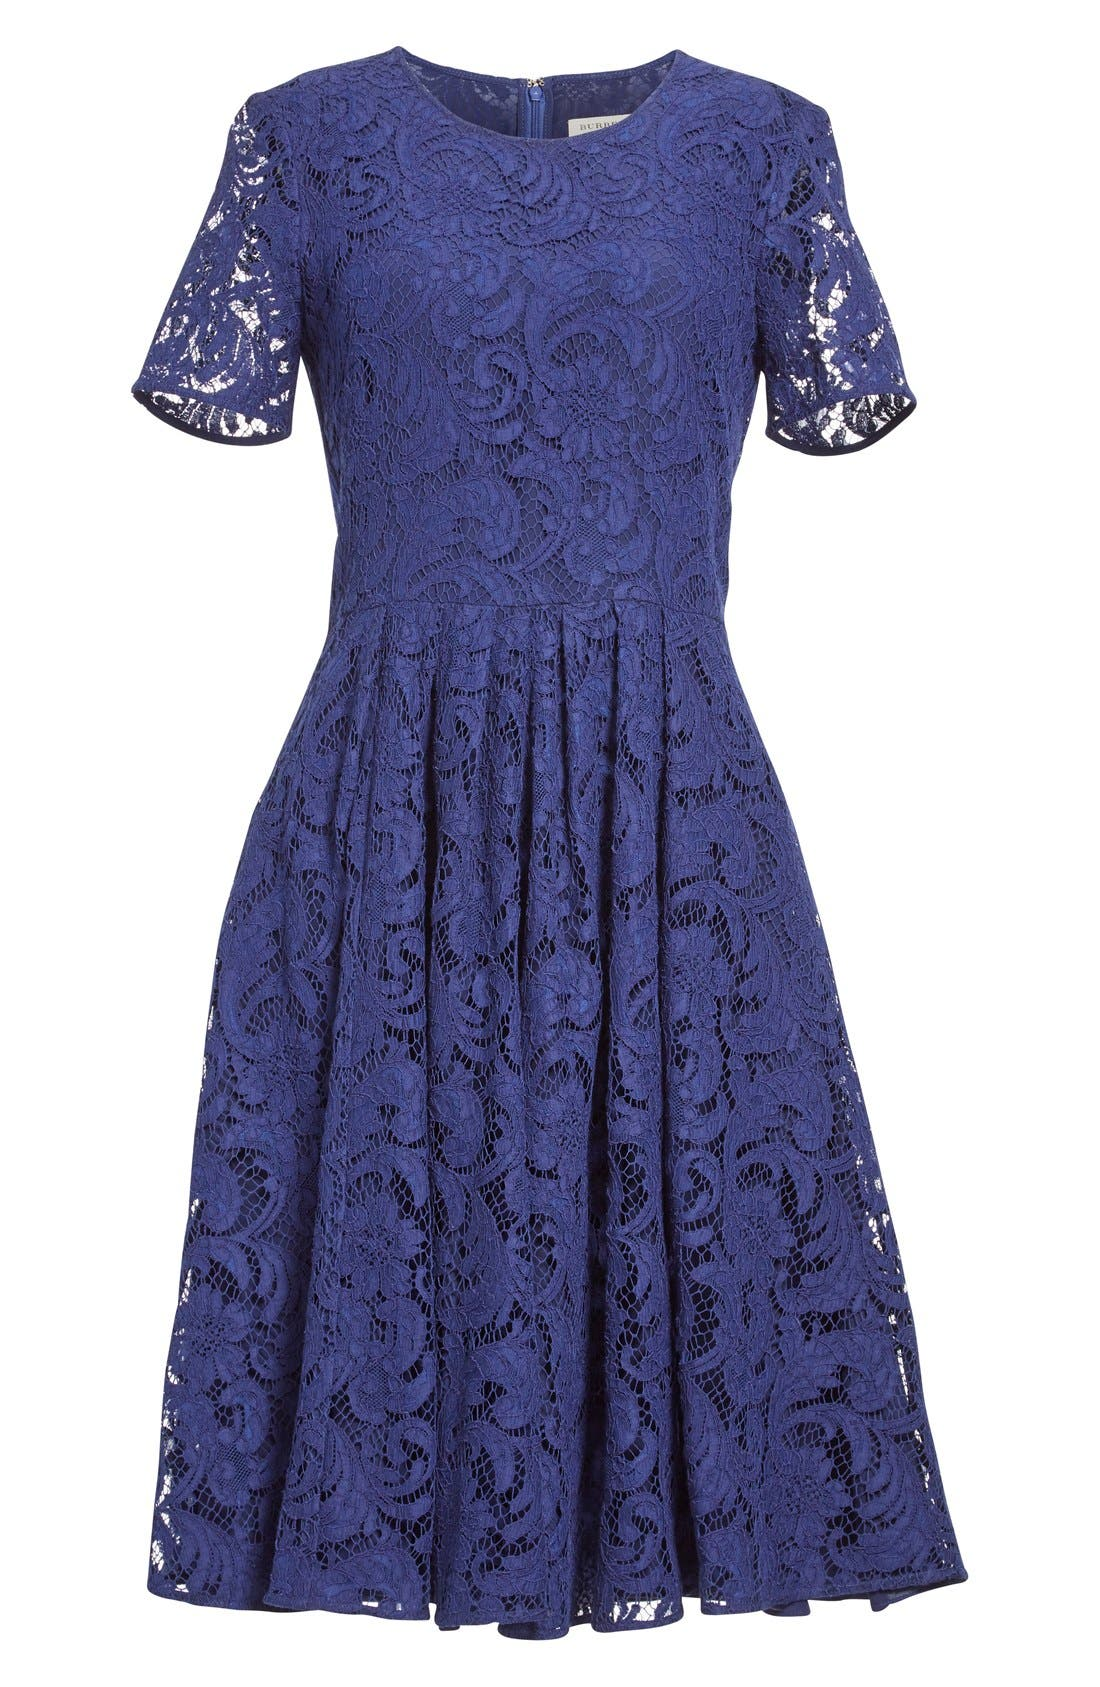 BURBERRY LONDON,                             'Alice' Short Sleeve Corded Lace Fit & Flare Dress,                             Alternate thumbnail 2, color,                             495